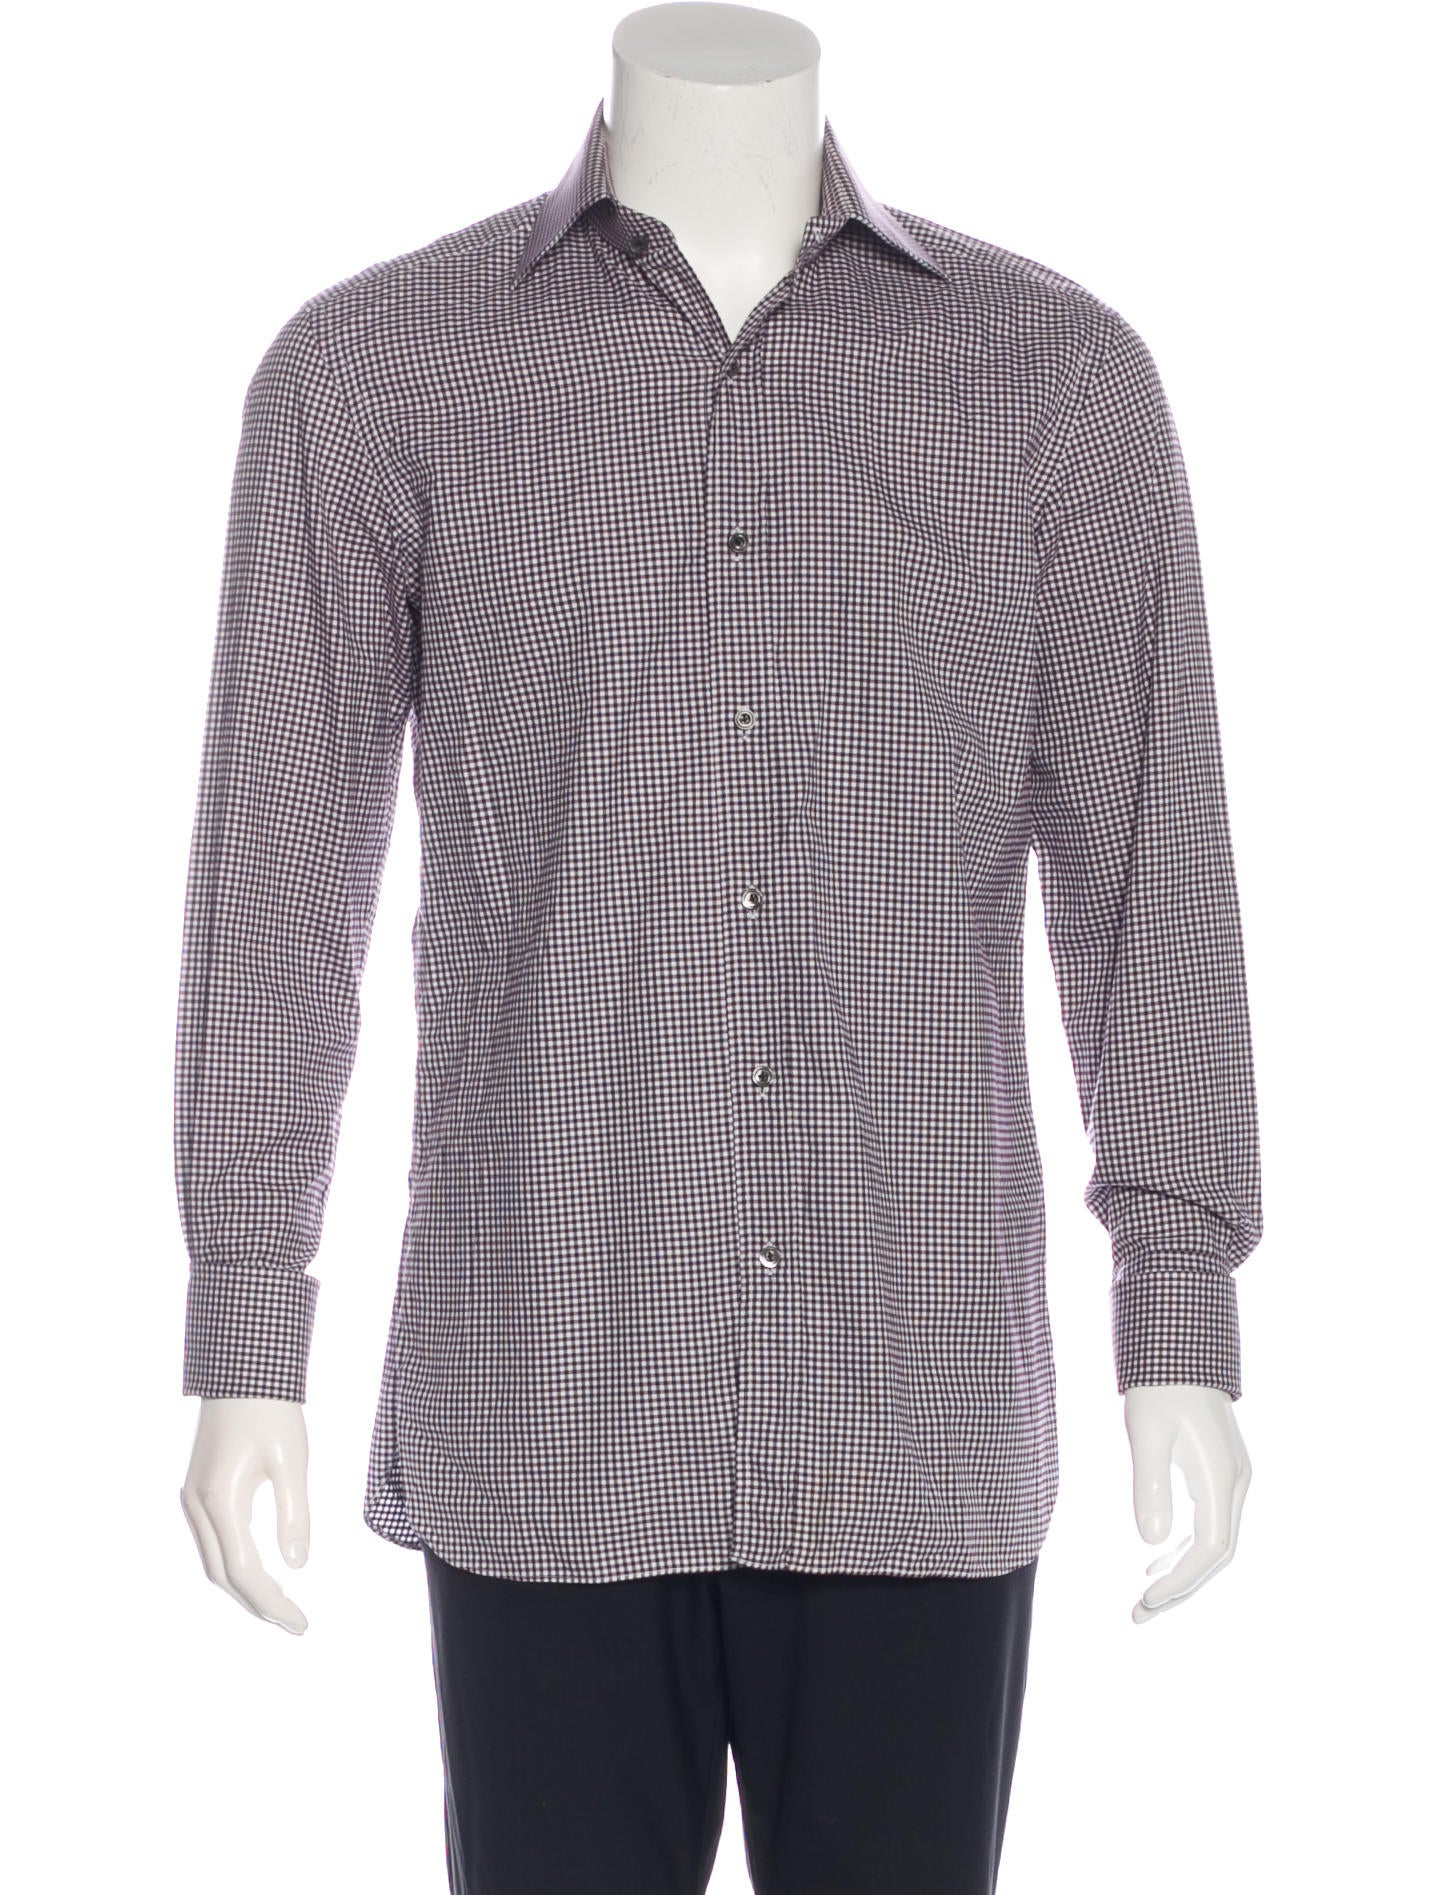 Tom ford gingham french cuff shirt clothing tom35803 for What is a french cuff shirt